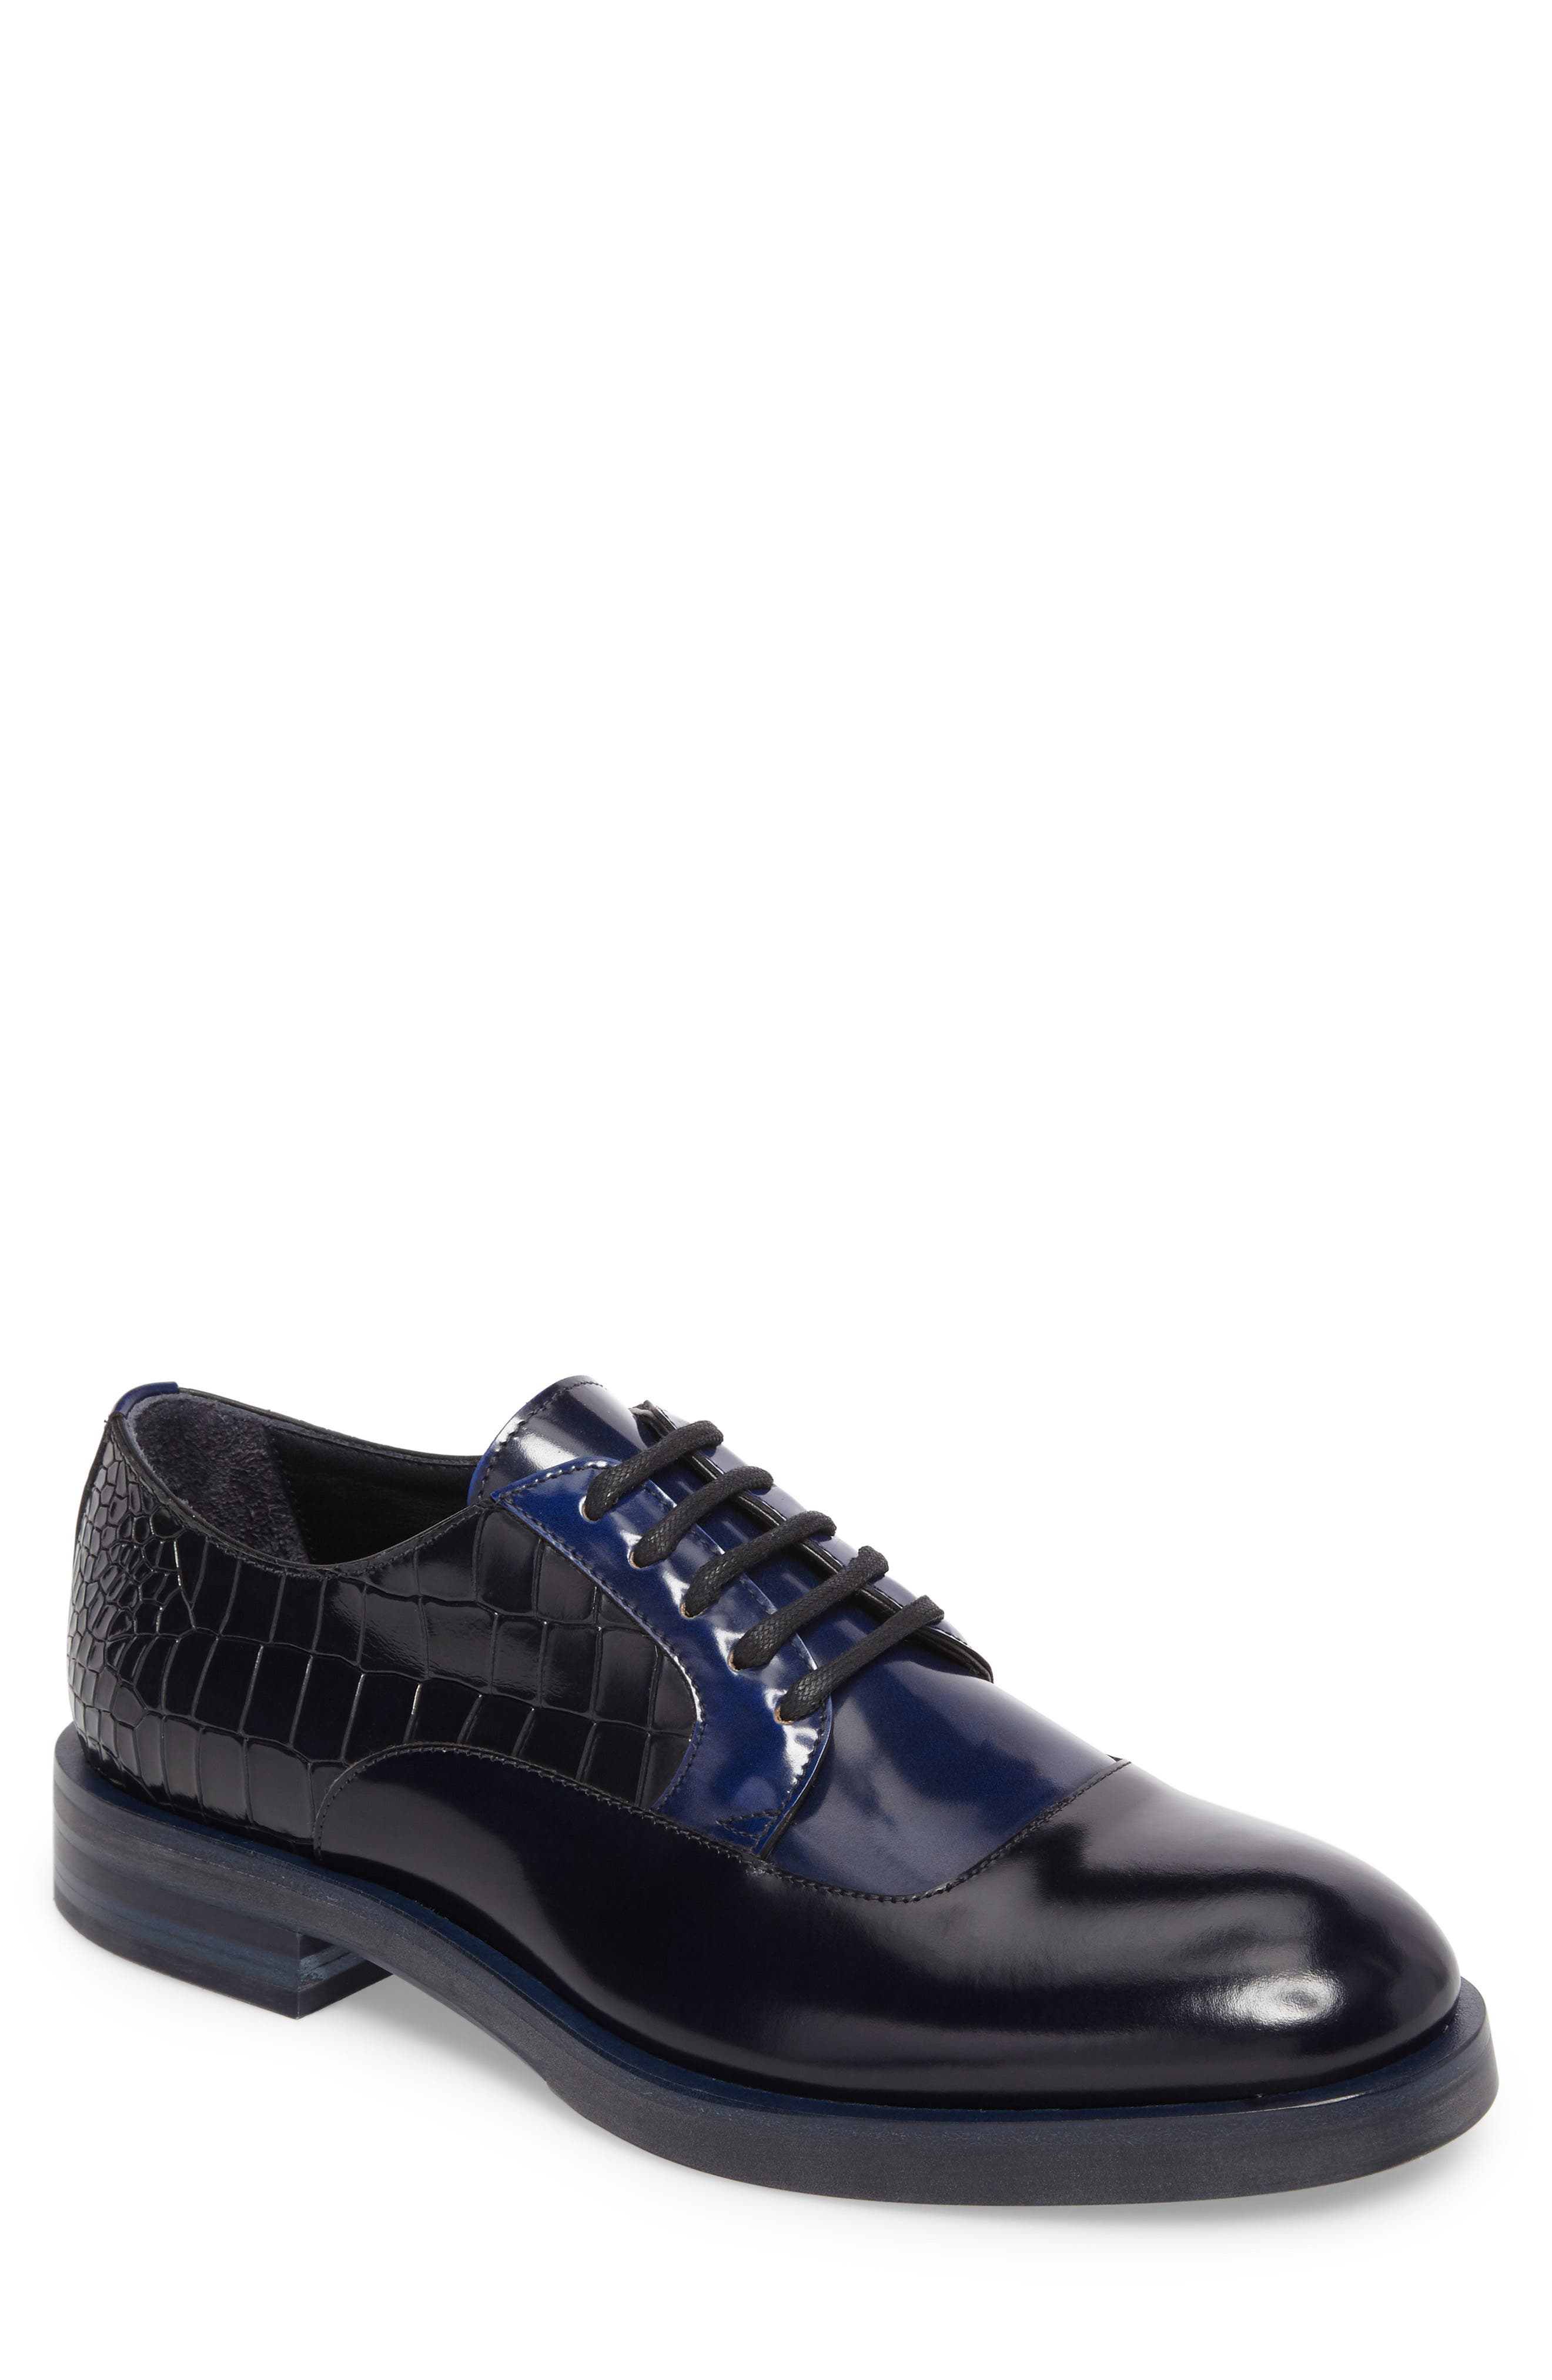 Bolan Croc Embossed Oxford,                         Main,                         color, 410